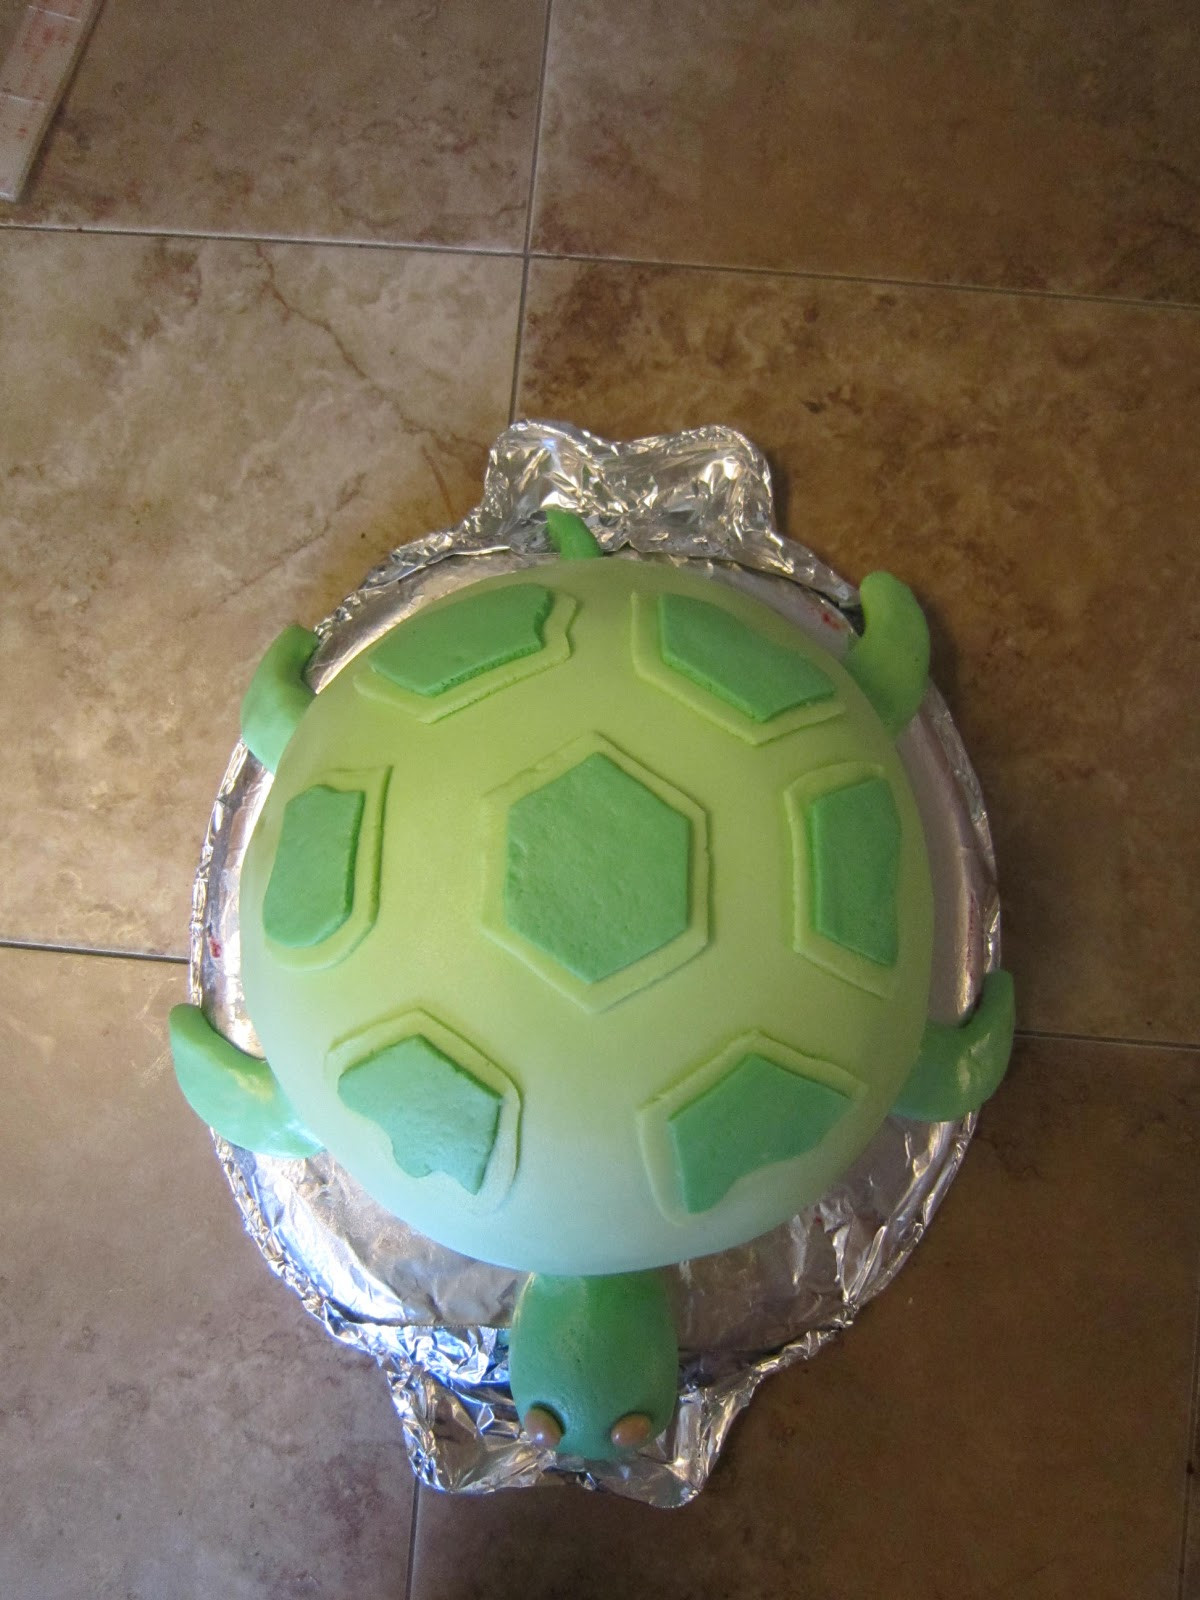 Best ideas about Turtle Birthday Cake . Save or Pin Our Life Turtle birthday cake Now.